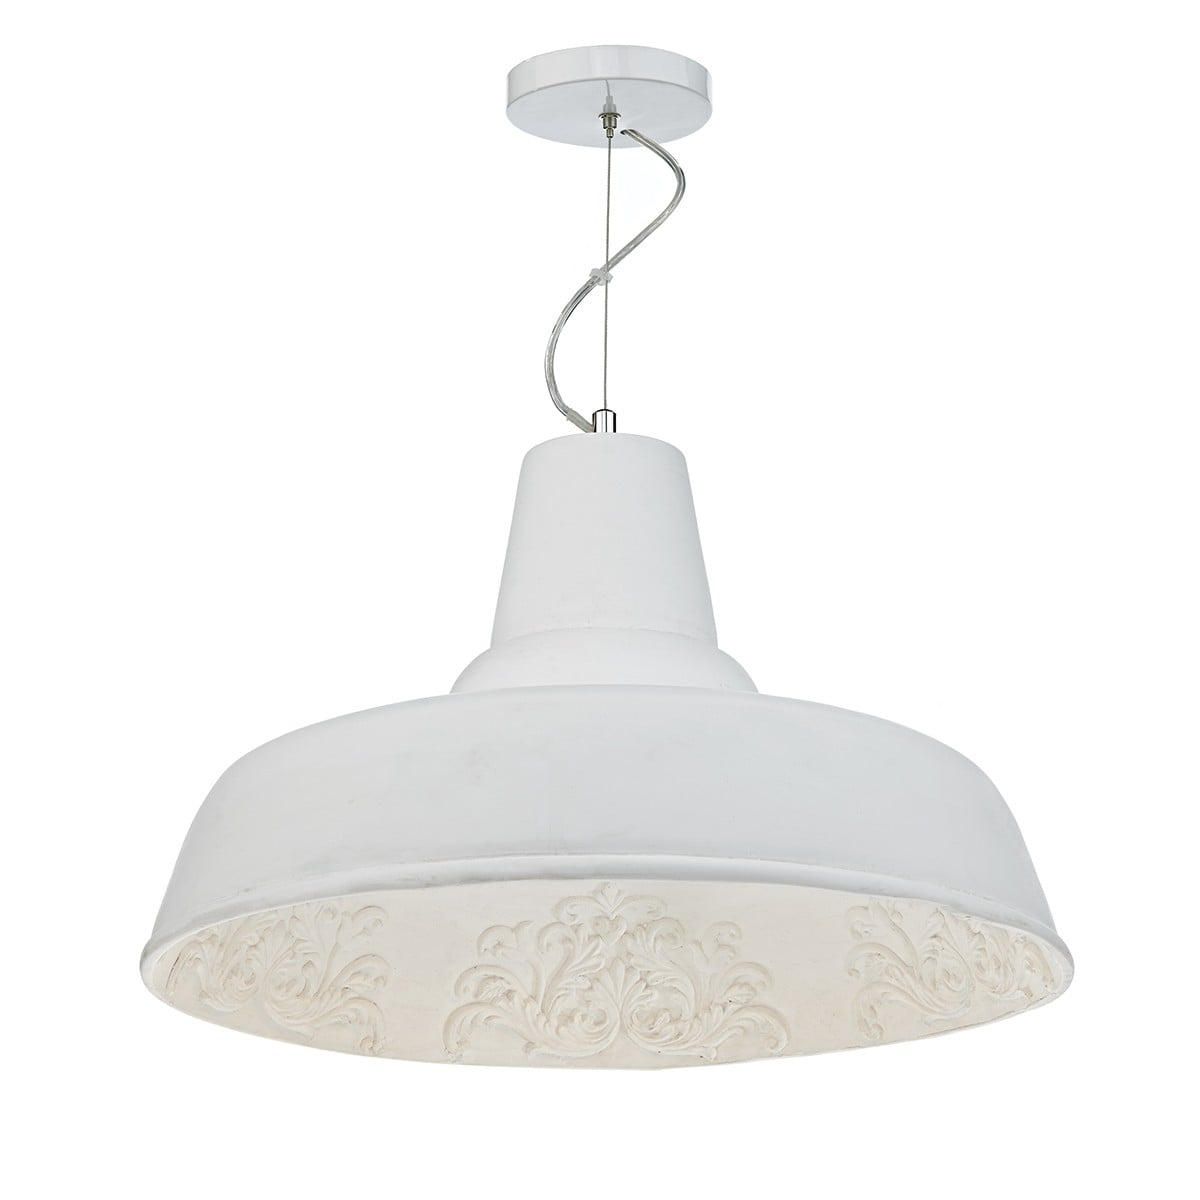 Dar SUS862 Susannah 1 Light Large Pendant in White.